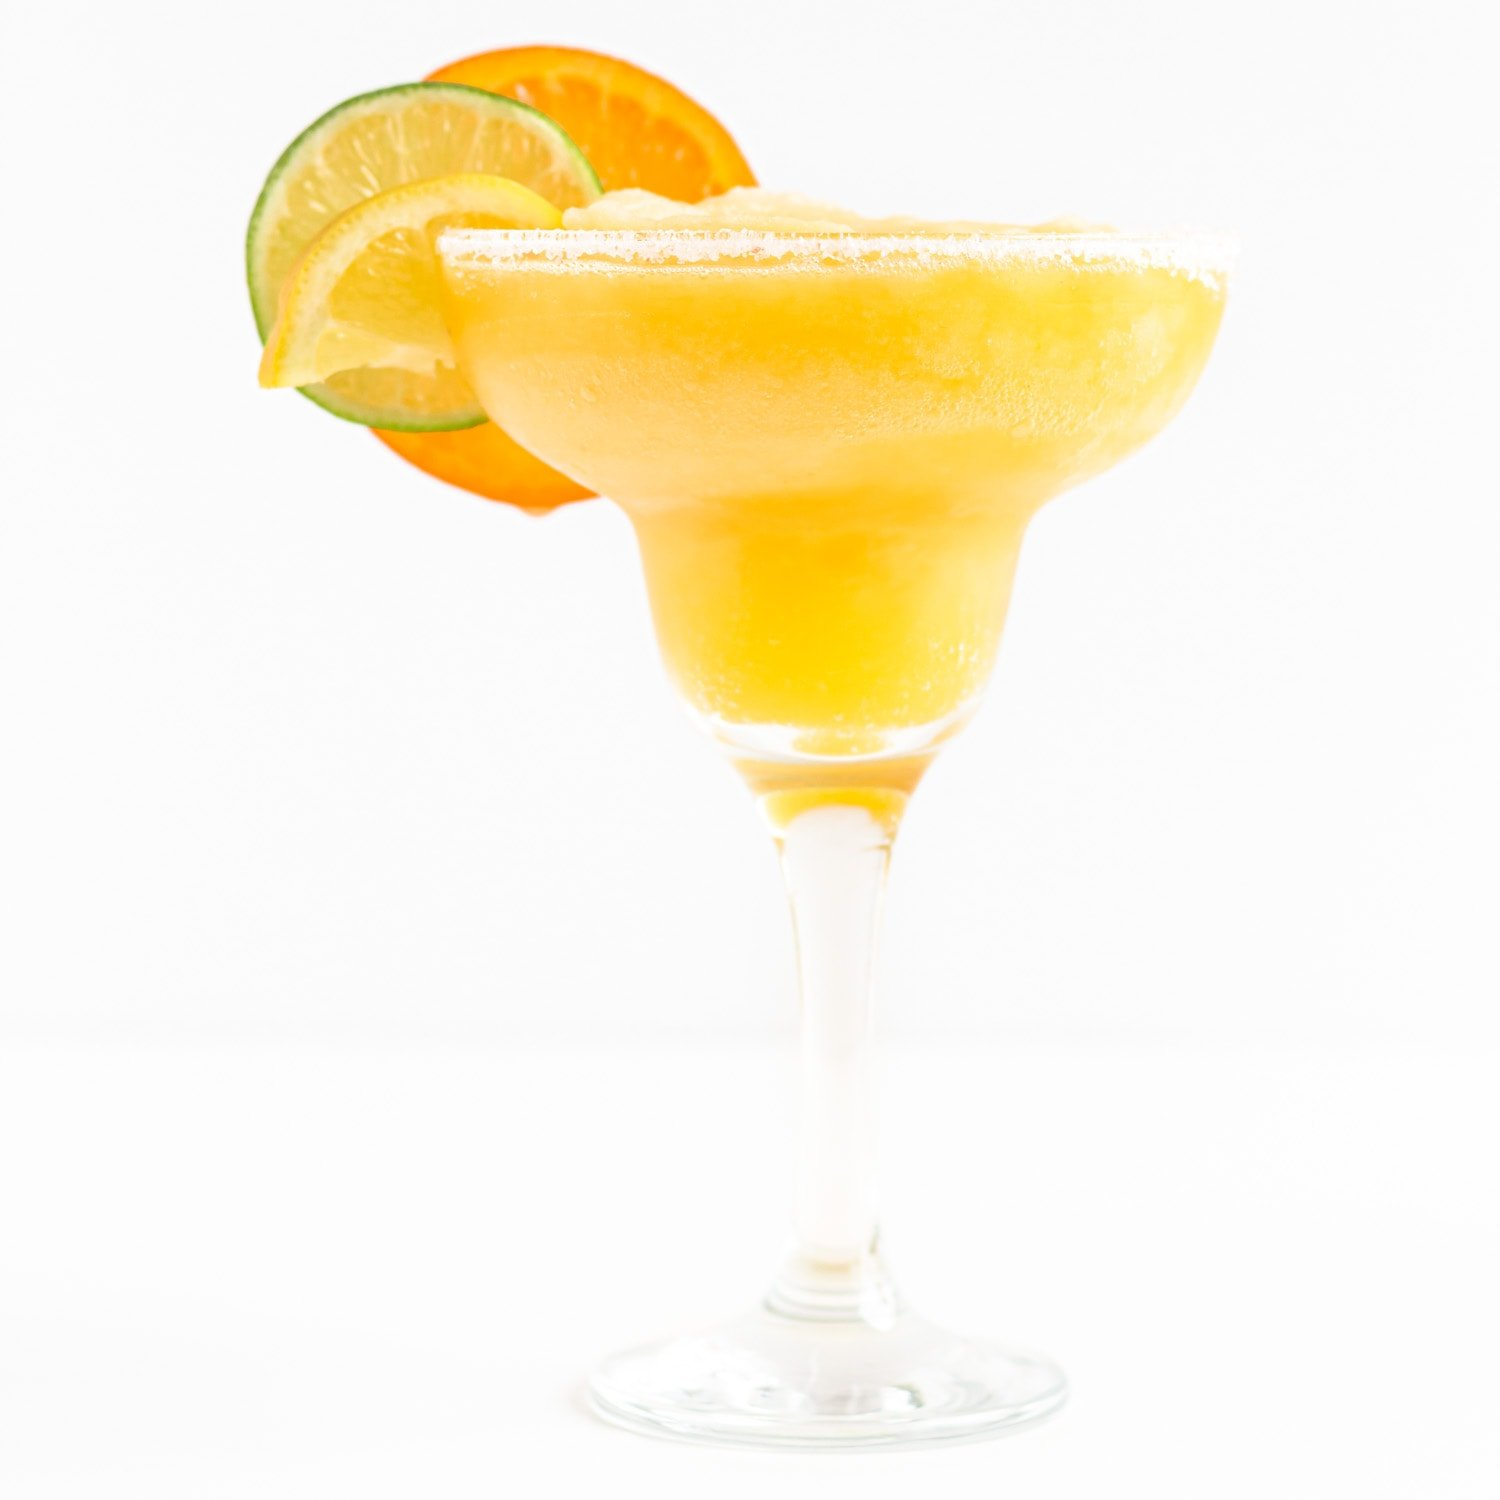 Single frozen citrus margarita garnished with orange, lemon and lime slices on a white background.